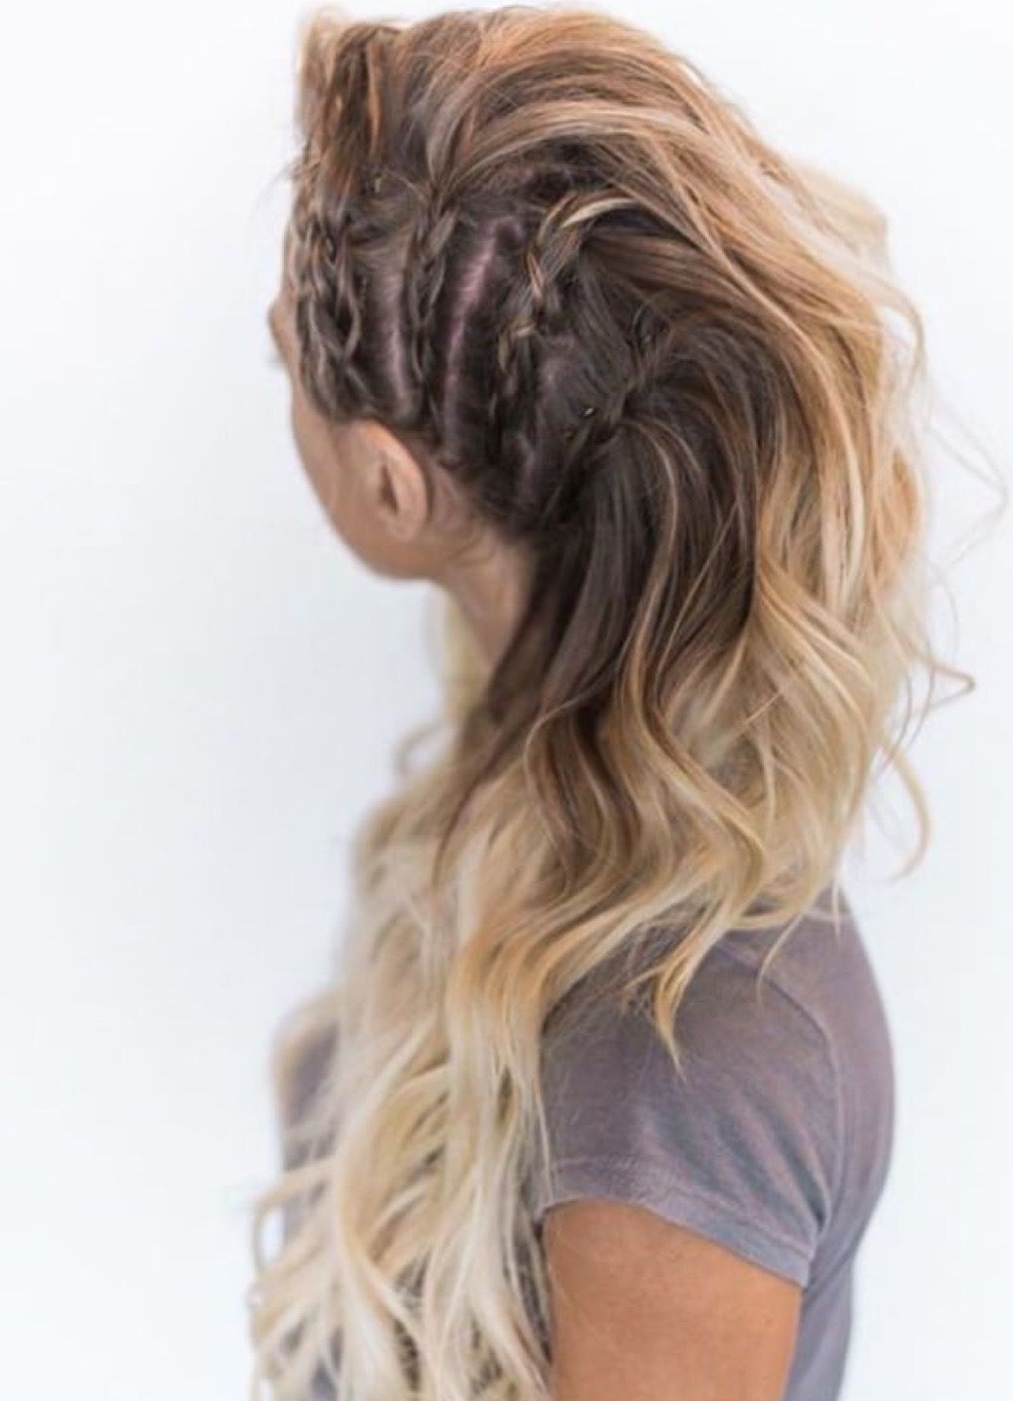 Avante Garde Inspired Side Braid Faux Mohawk With Curls All Falling Throughout Most Popular Brunette Macrame Braid Hairstyles (View 3 of 20)